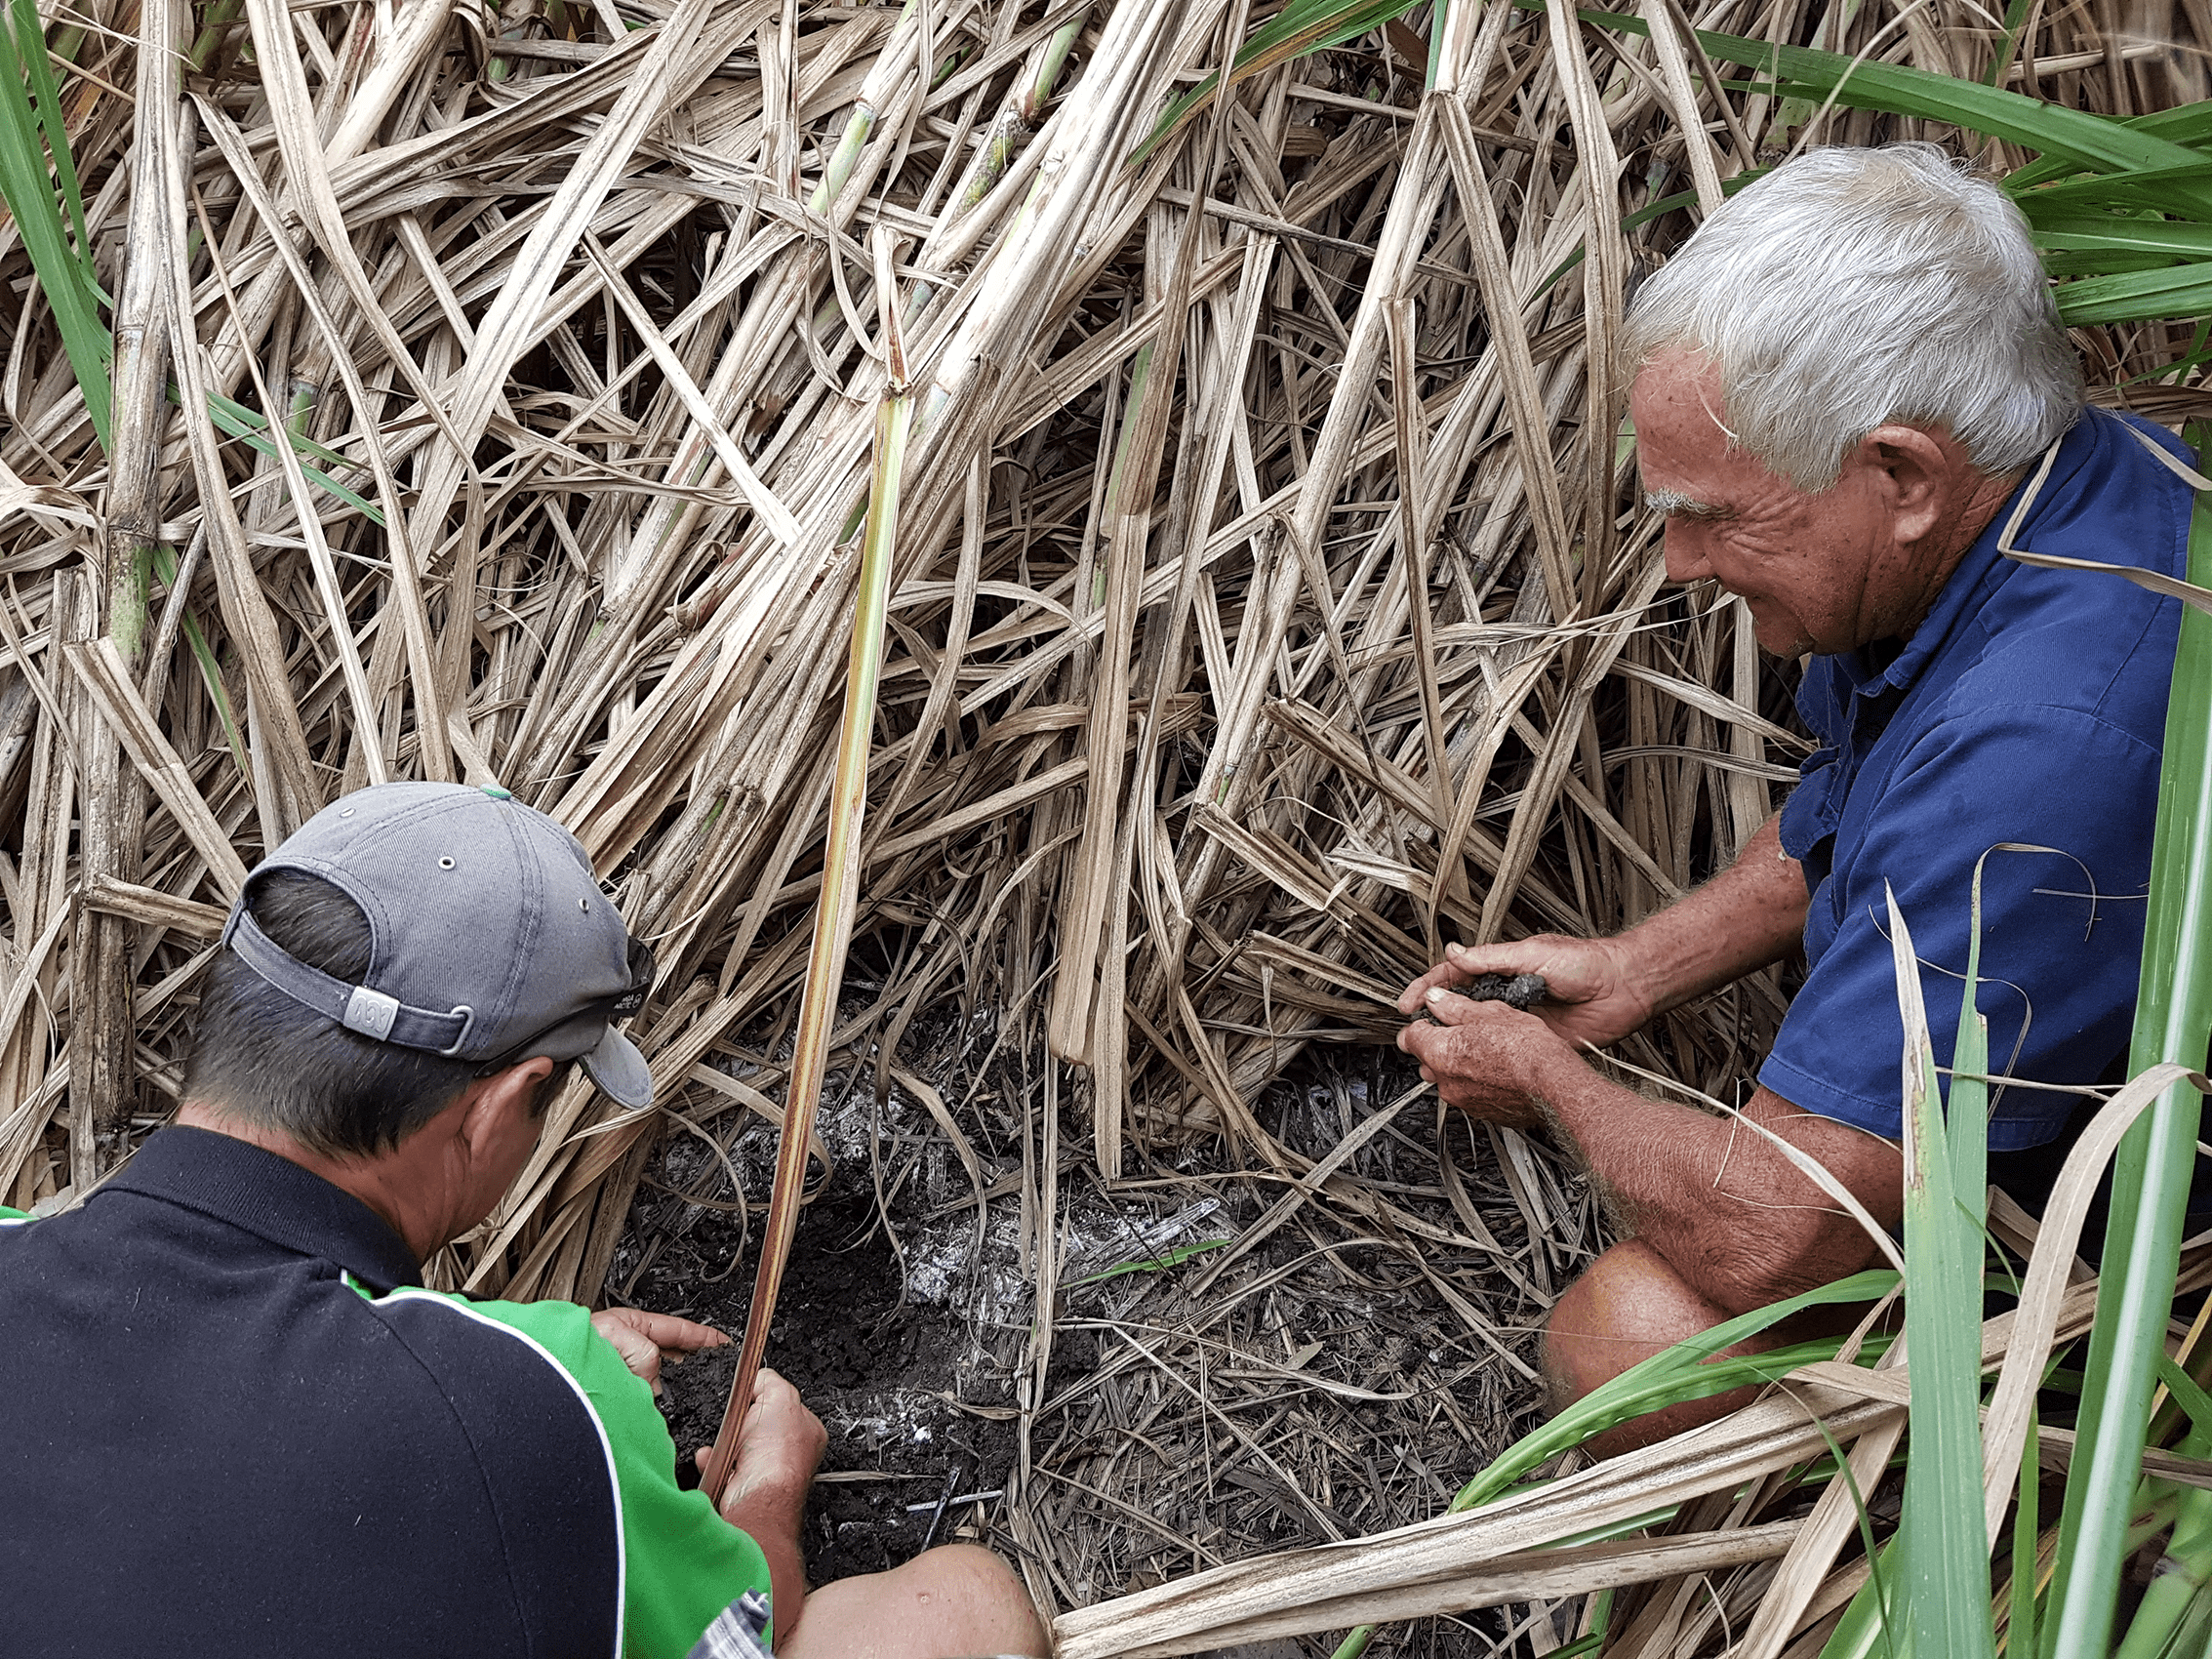 Checking soil on sugar cane farm in QLD